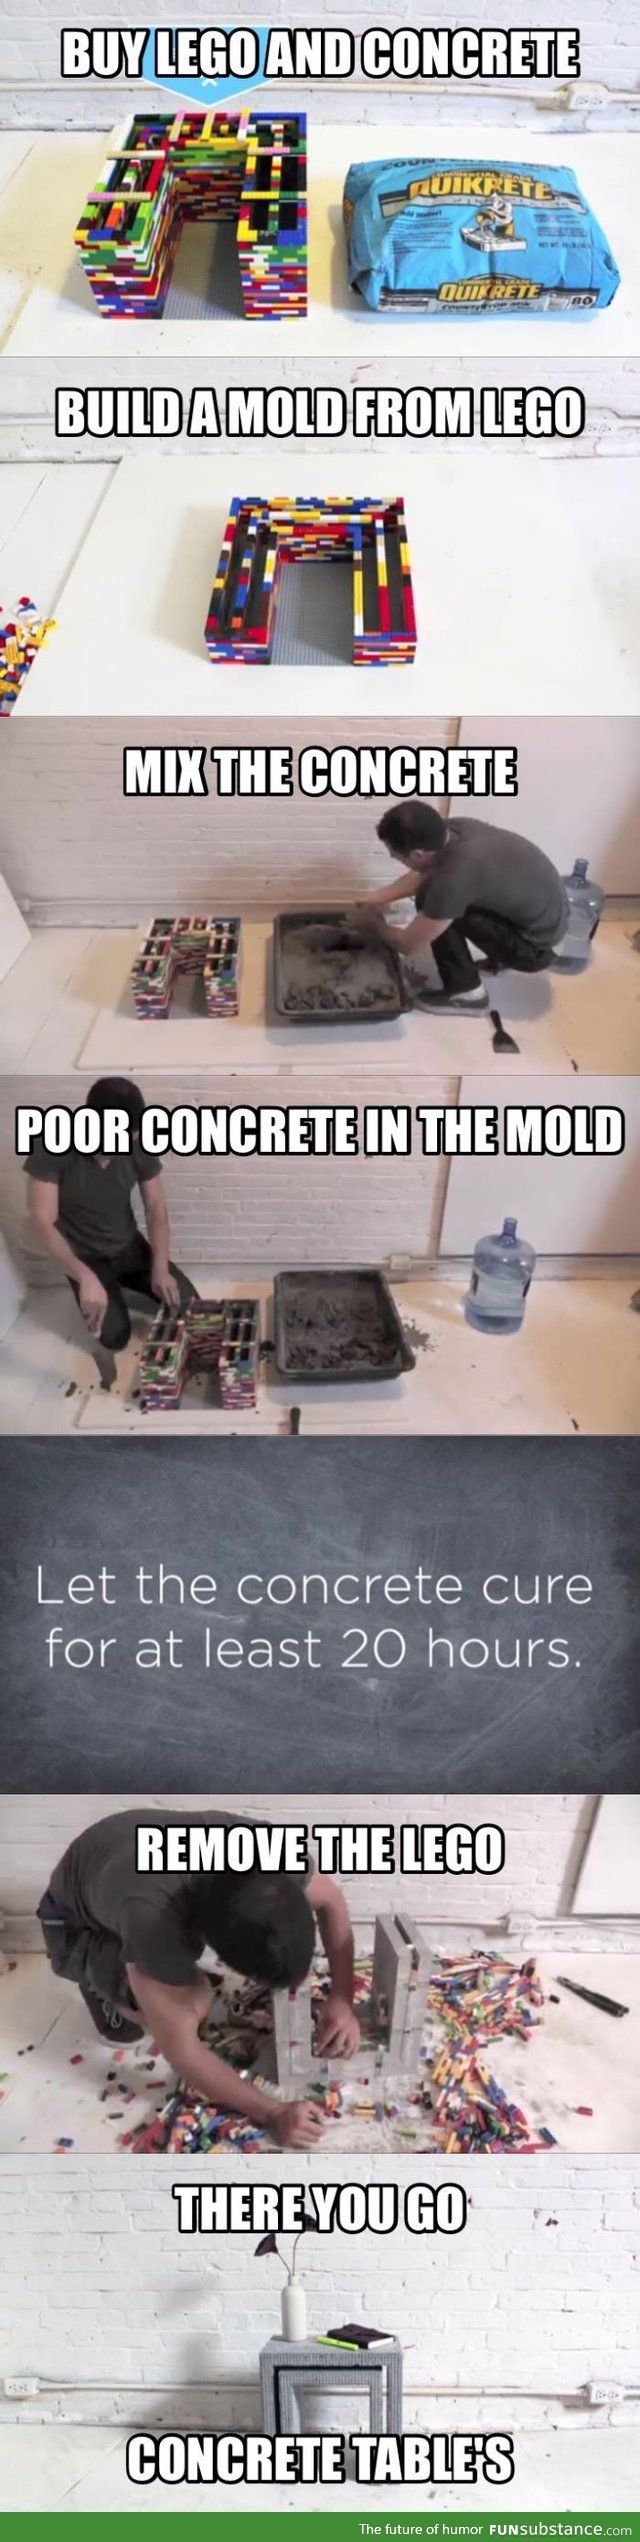 Building with LEGO concrete mold